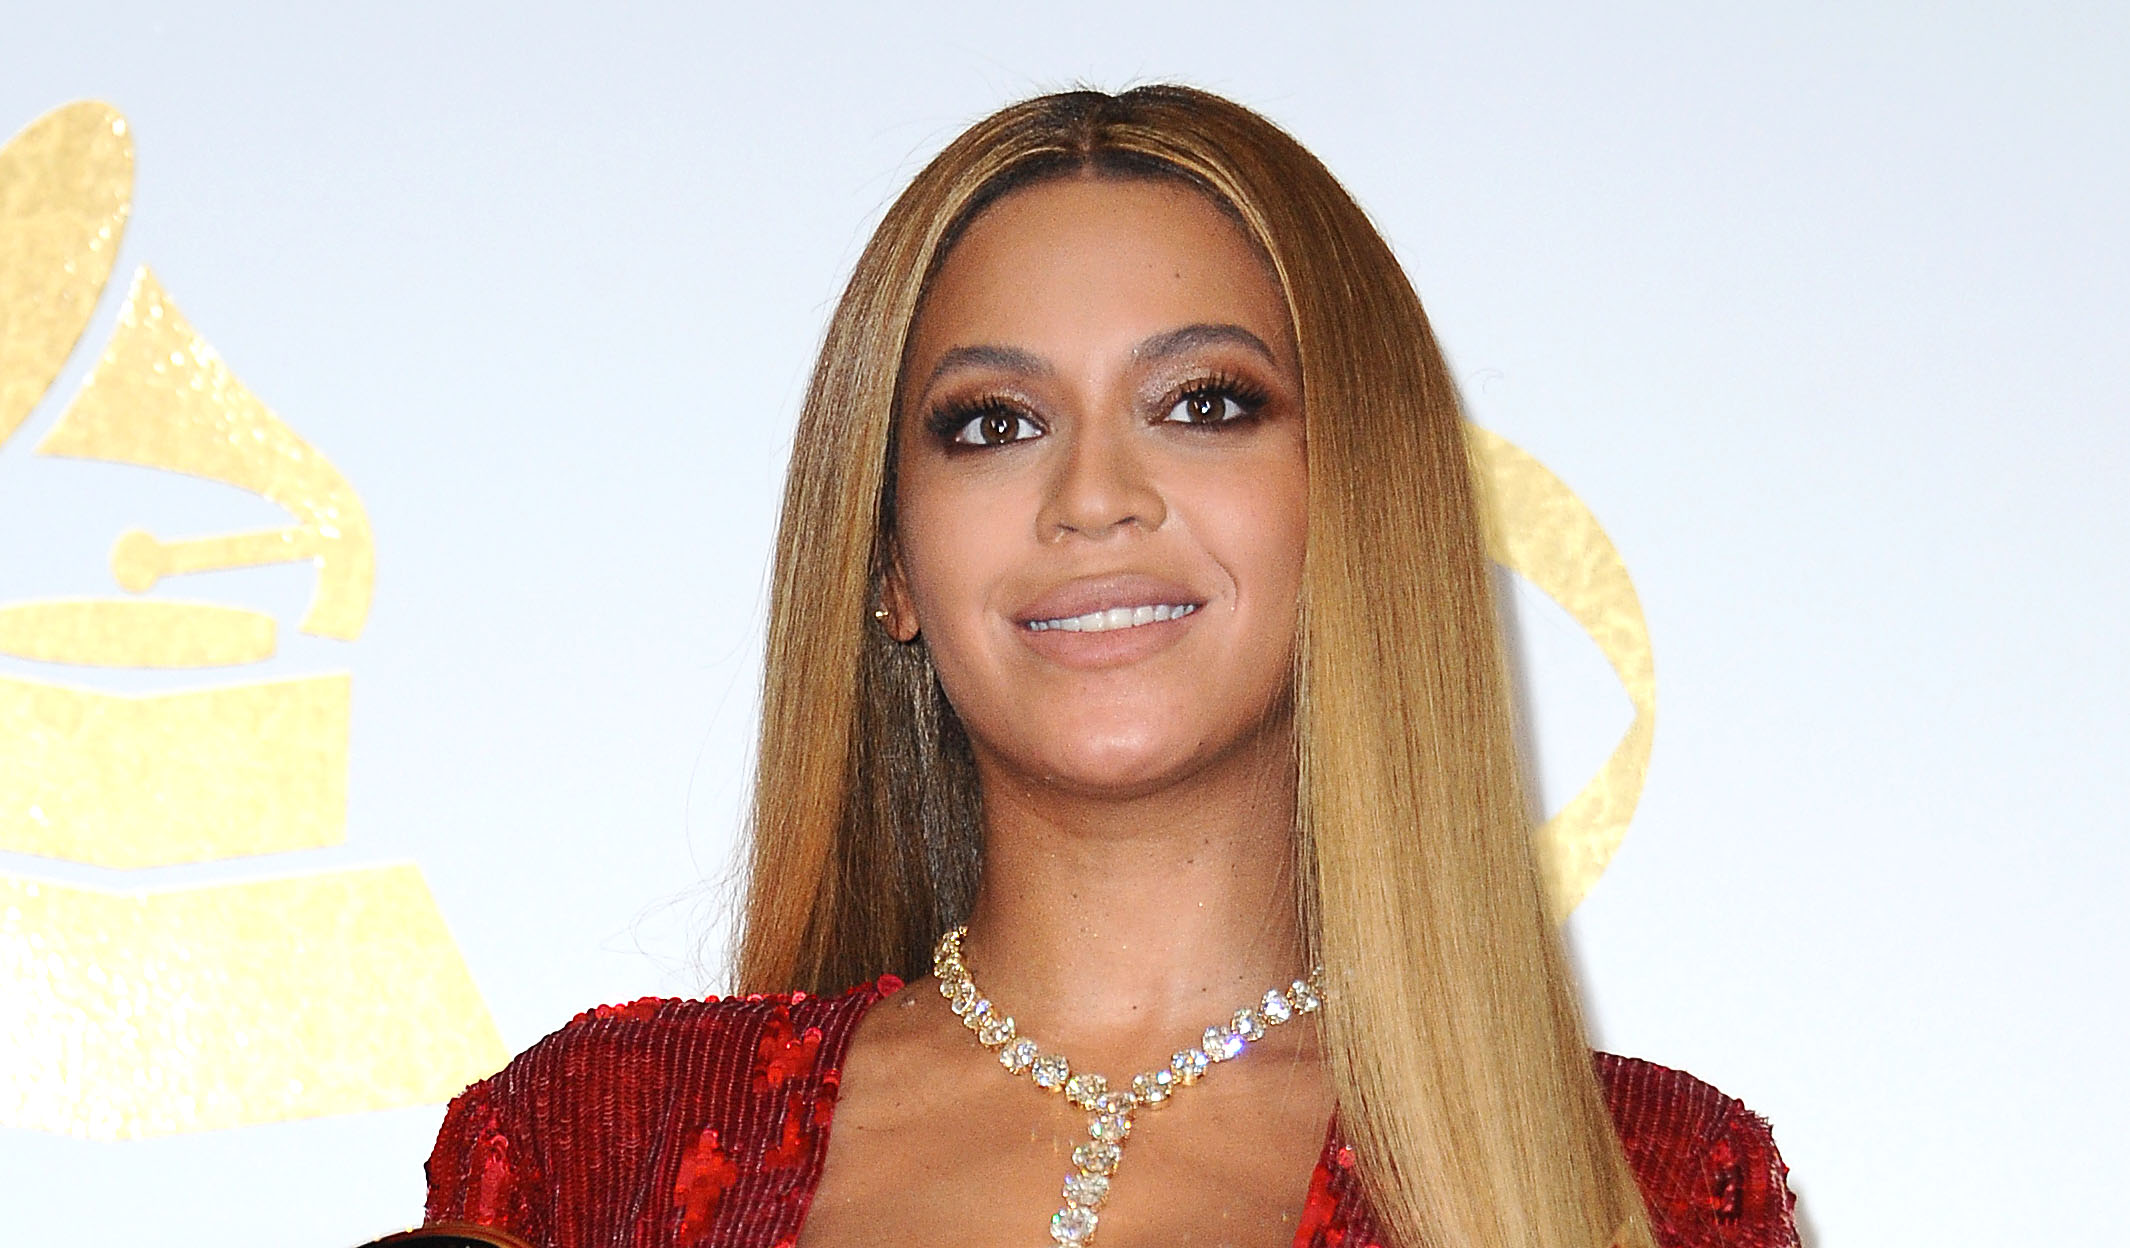 Beyoncé's rose-red maternity dress just went on sale